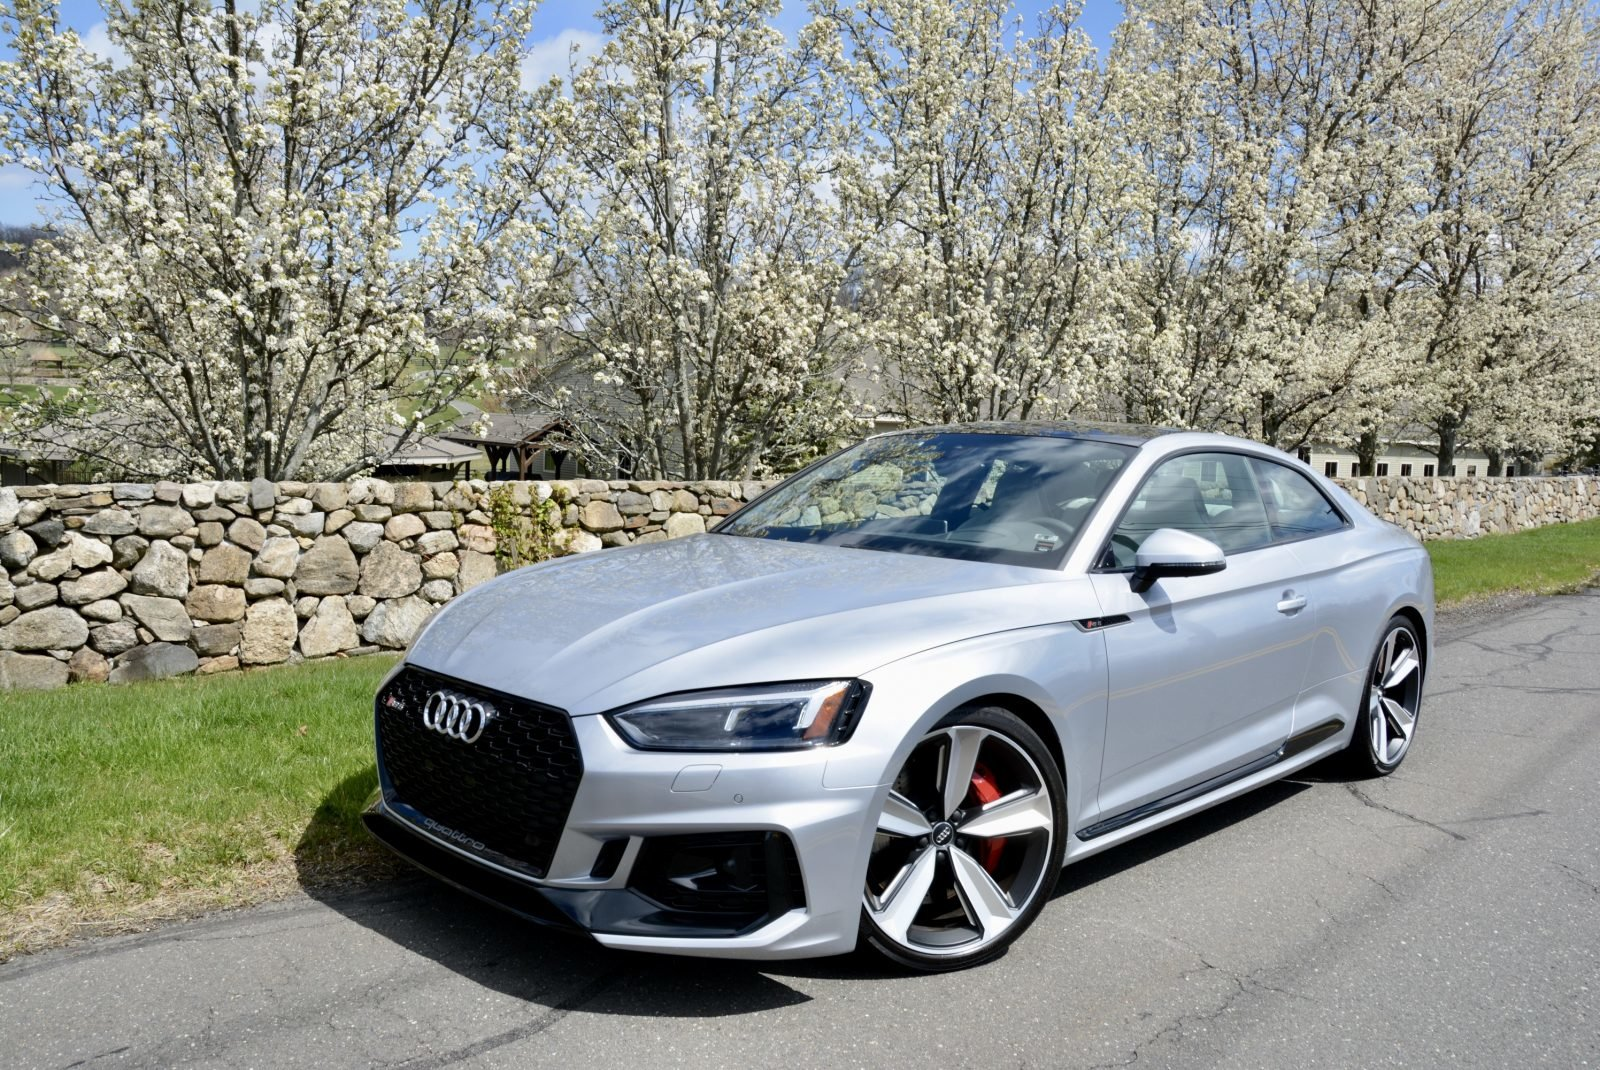 2018 Audi RS5 Coupe AWD Fast 444-HP 8 speed 1.4k miles $68.9 For Sale (picture 1 of 6)